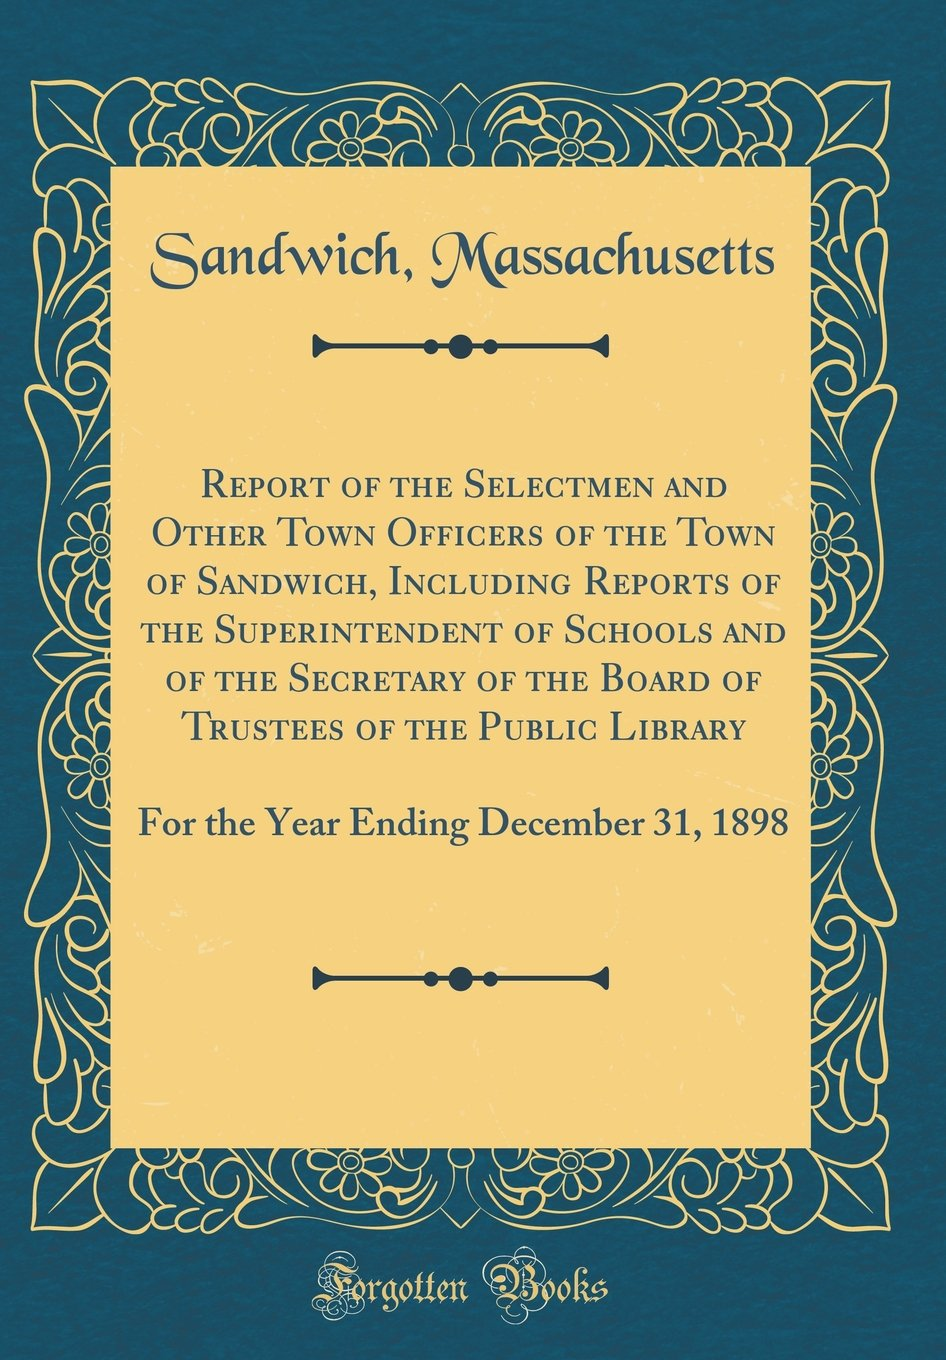 Download Report of the Selectmen and Other Town Officers of the Town of Sandwich, Including Reports of the Superintendent of Schools and of the Secretary of ... Ending December 31, 1898 (Classic Reprint) PDF